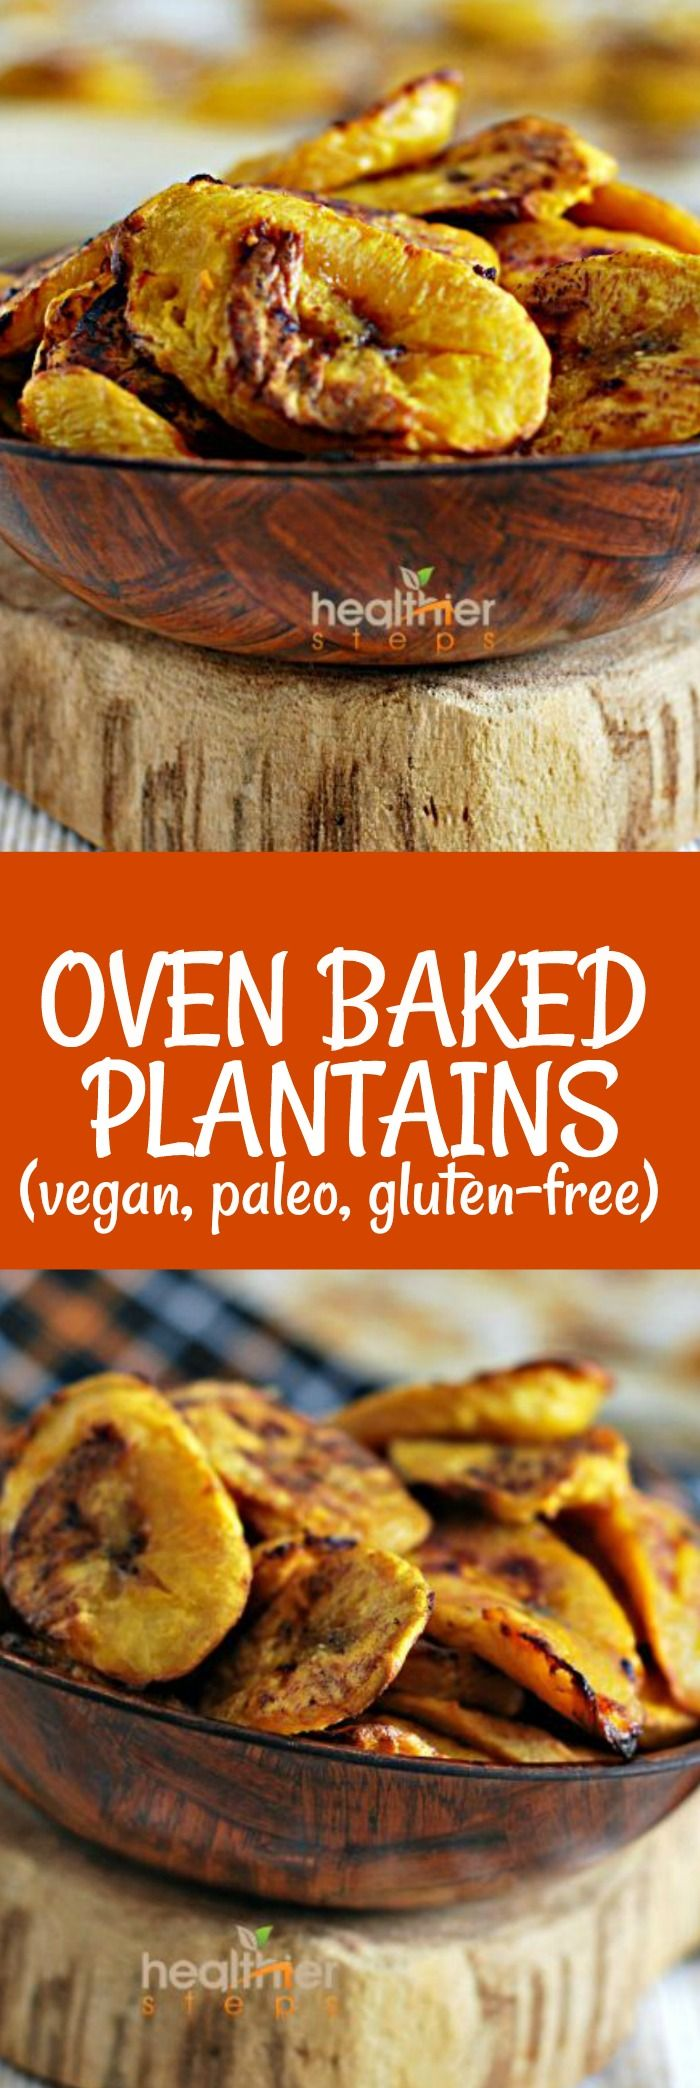 Oven Baked Plantains are a Caribbean staple this version is lower in fat than traditional fried plantains. Paleo, vegan and gluten-free #caribbean #jamaicanrecipes